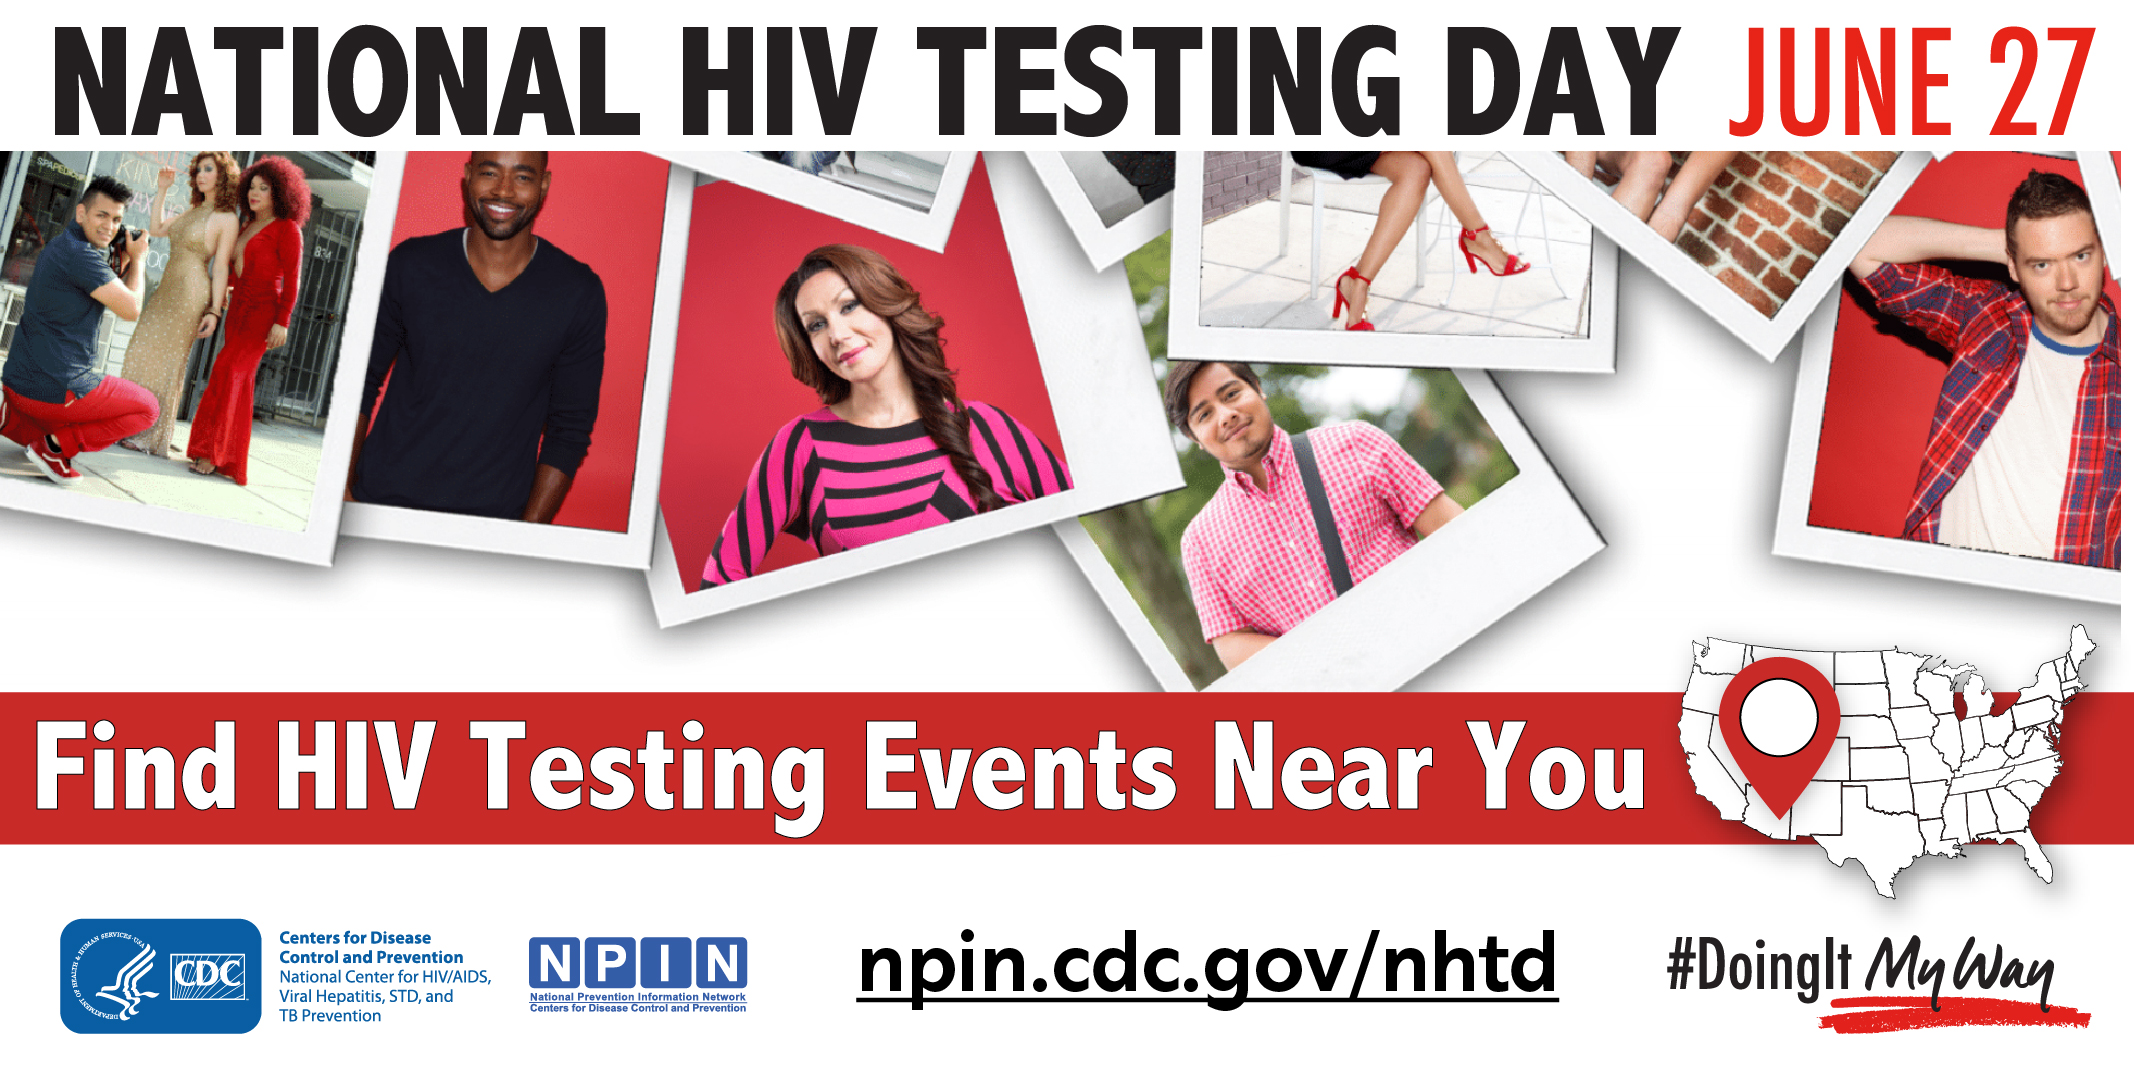 National HIV Testing Day June 27. Find HIV Testing Events Near You.